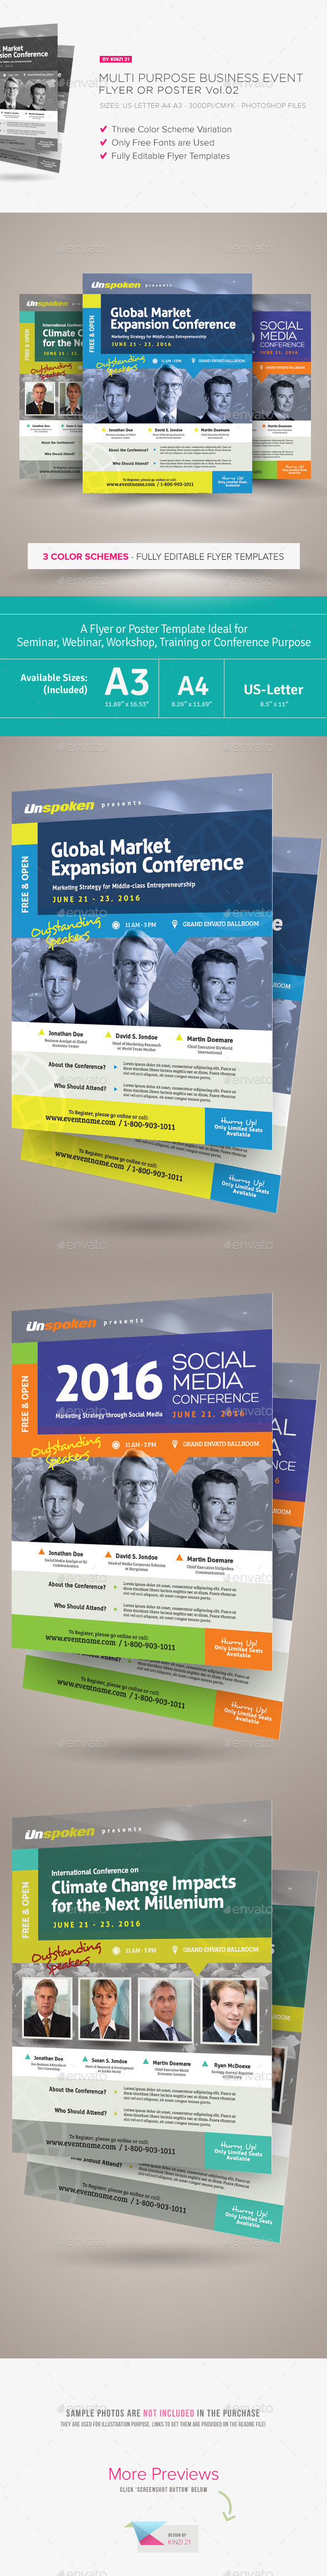 Multi Purpose Business Event Flyer or Poster v.02 - Corporate Flyers